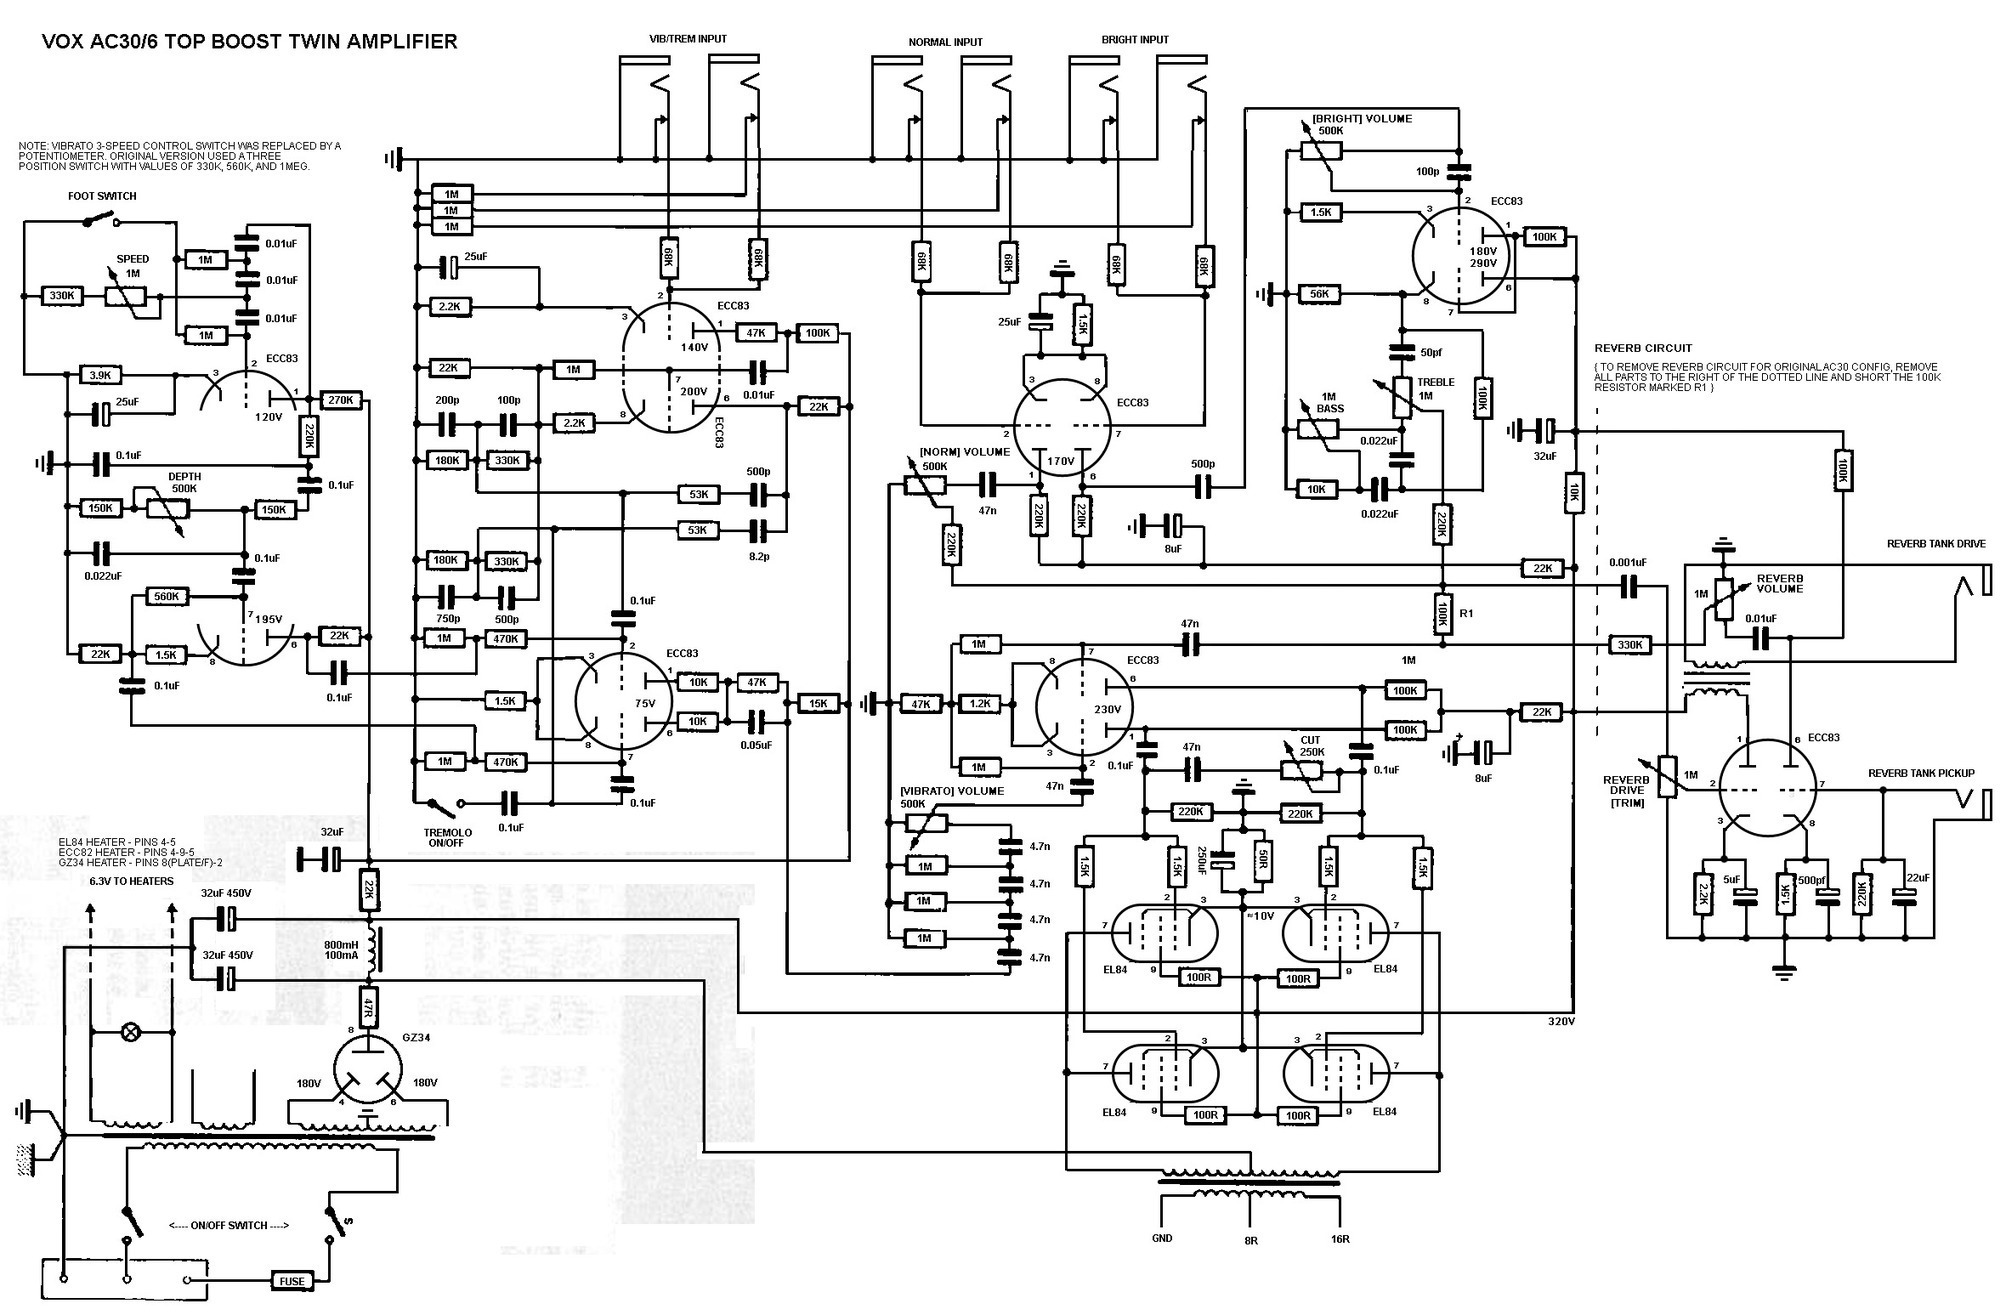 plymouth valiant scamp engine diagram